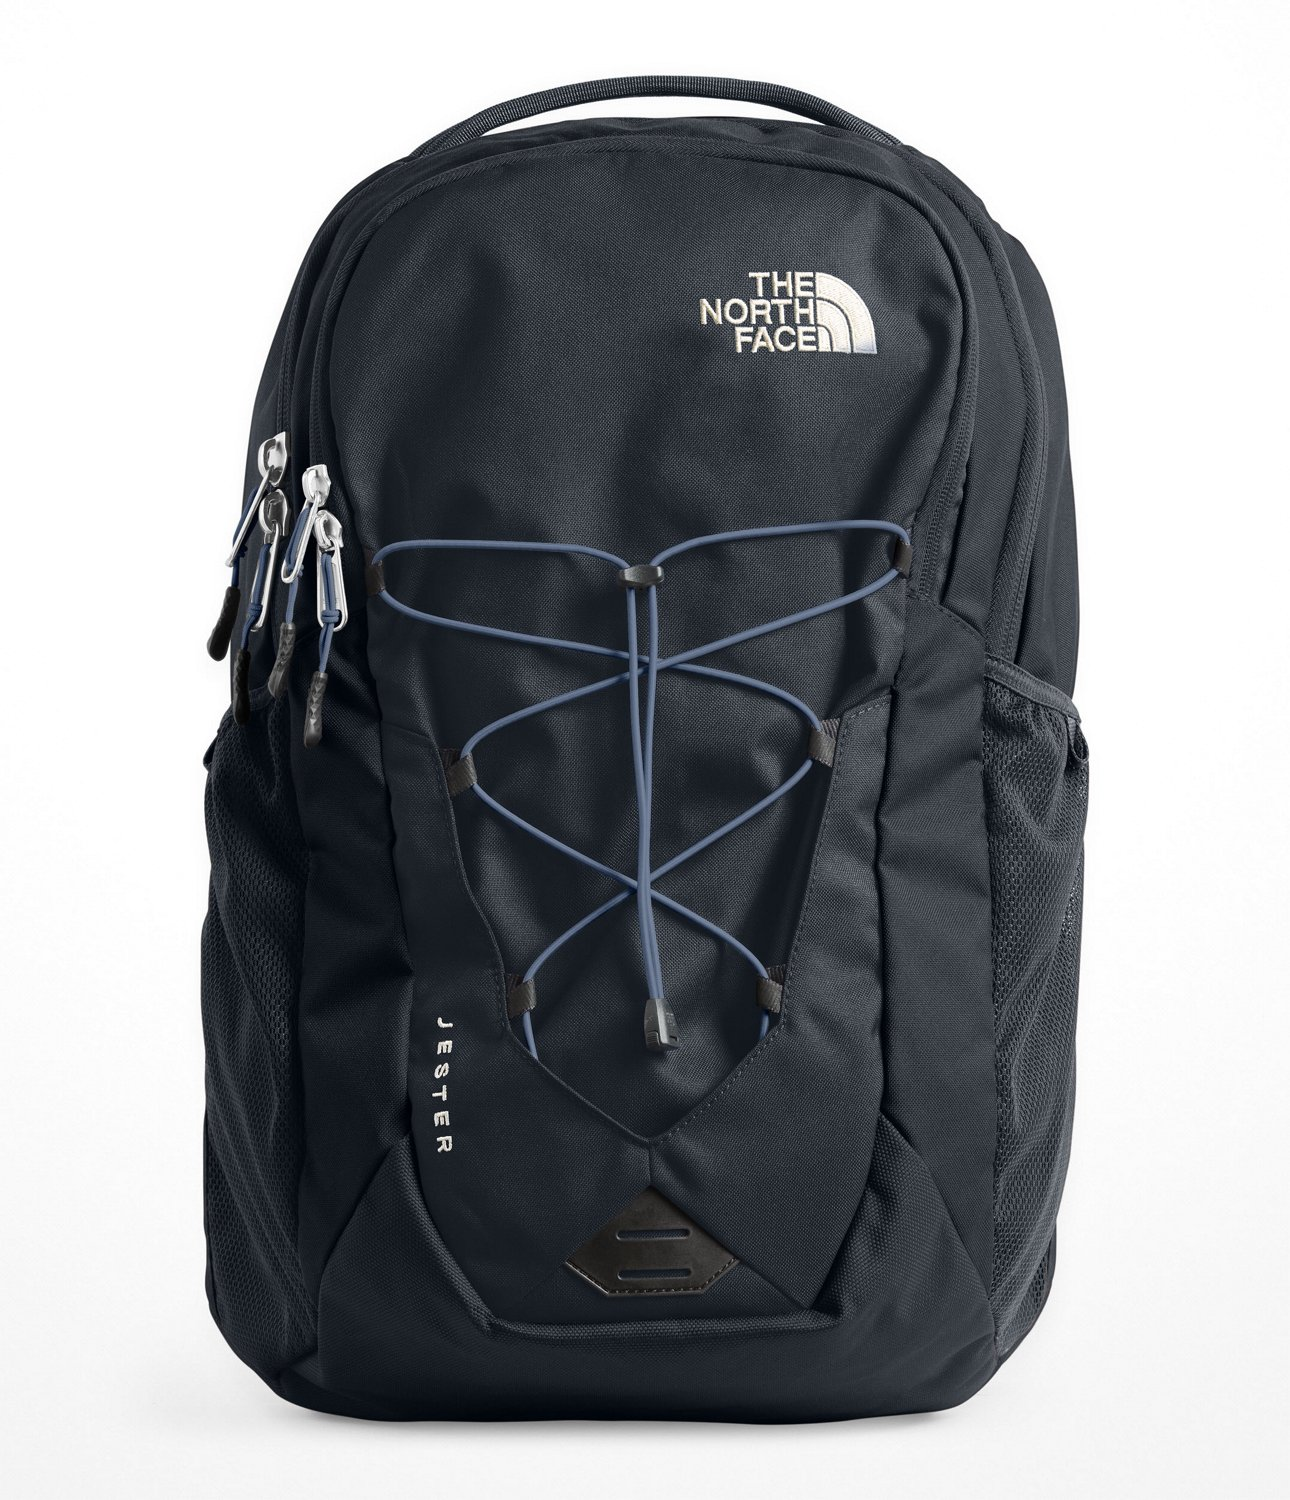 afdbce248 Display product reviews for The North Face Mountain Lifestyle Jester  Backpack